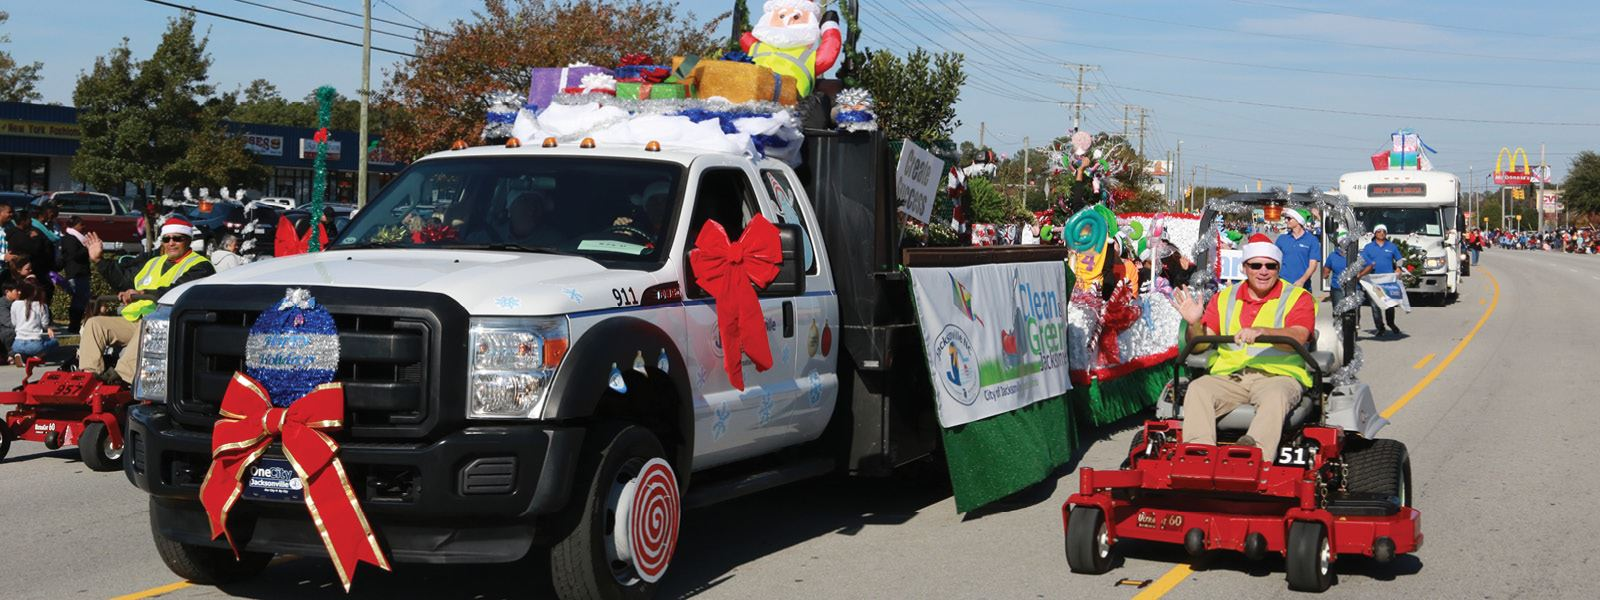 Annual Holiday Parade - Saturday, November 17